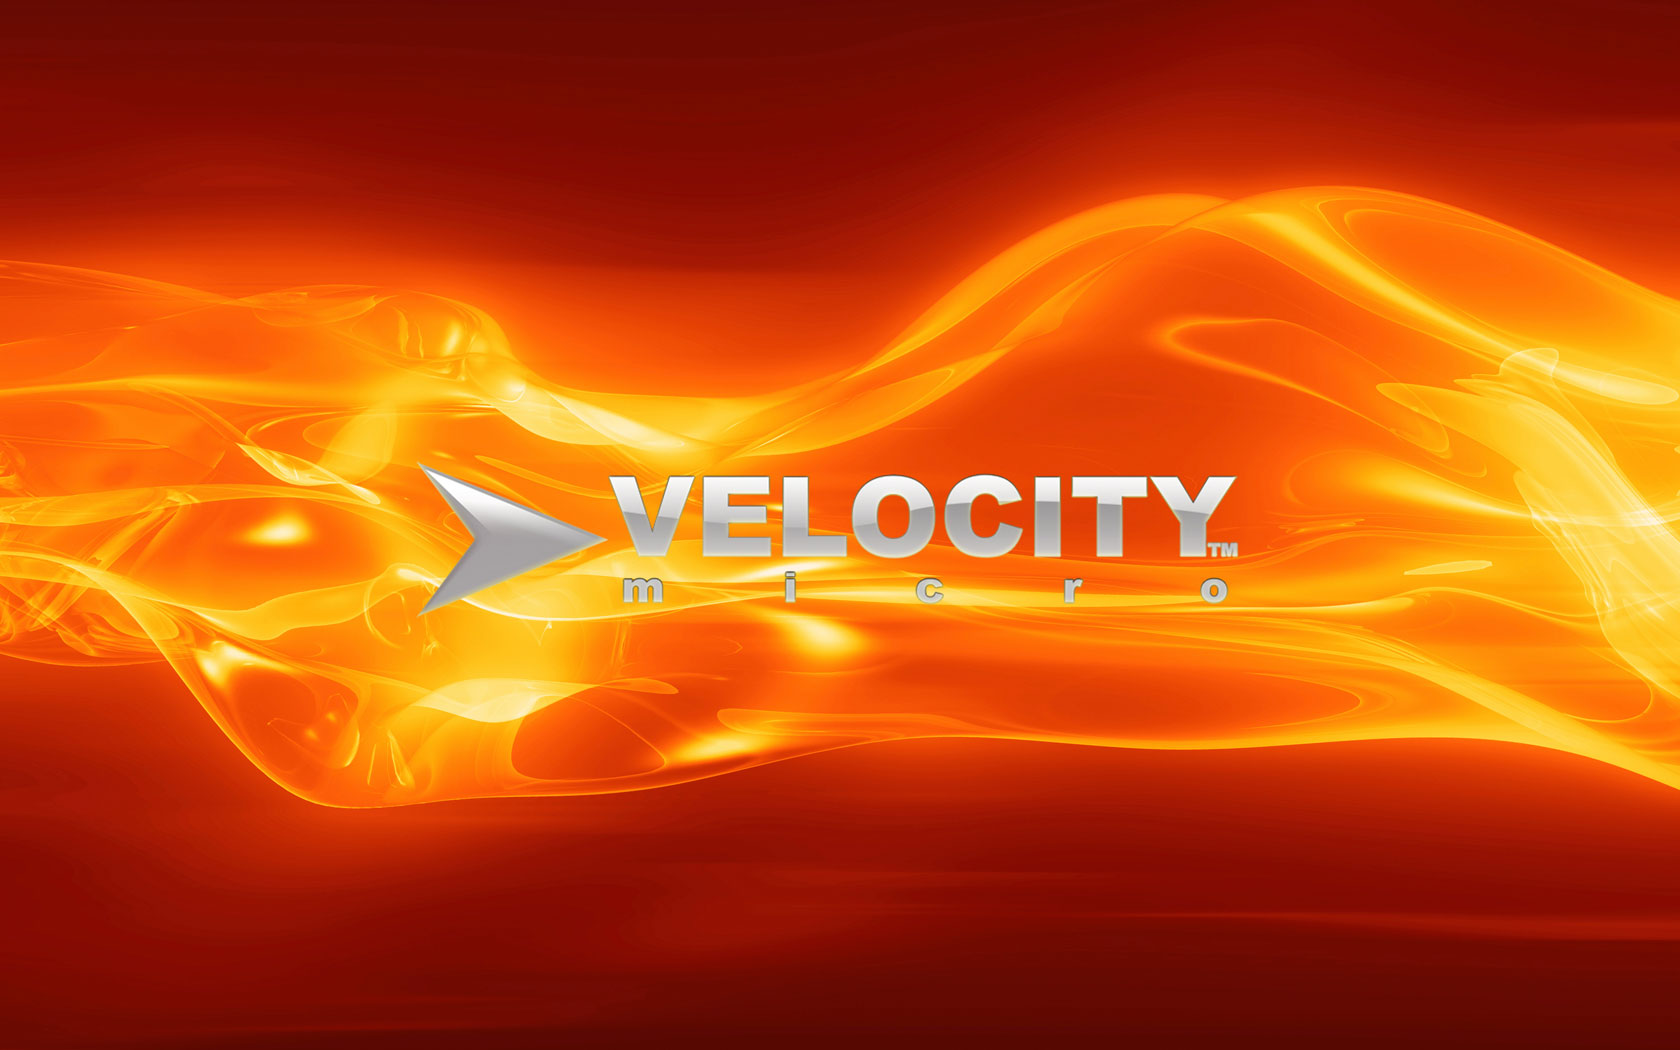 Velocity Micro Brand Resources - Wallpapers | Velocity Micro